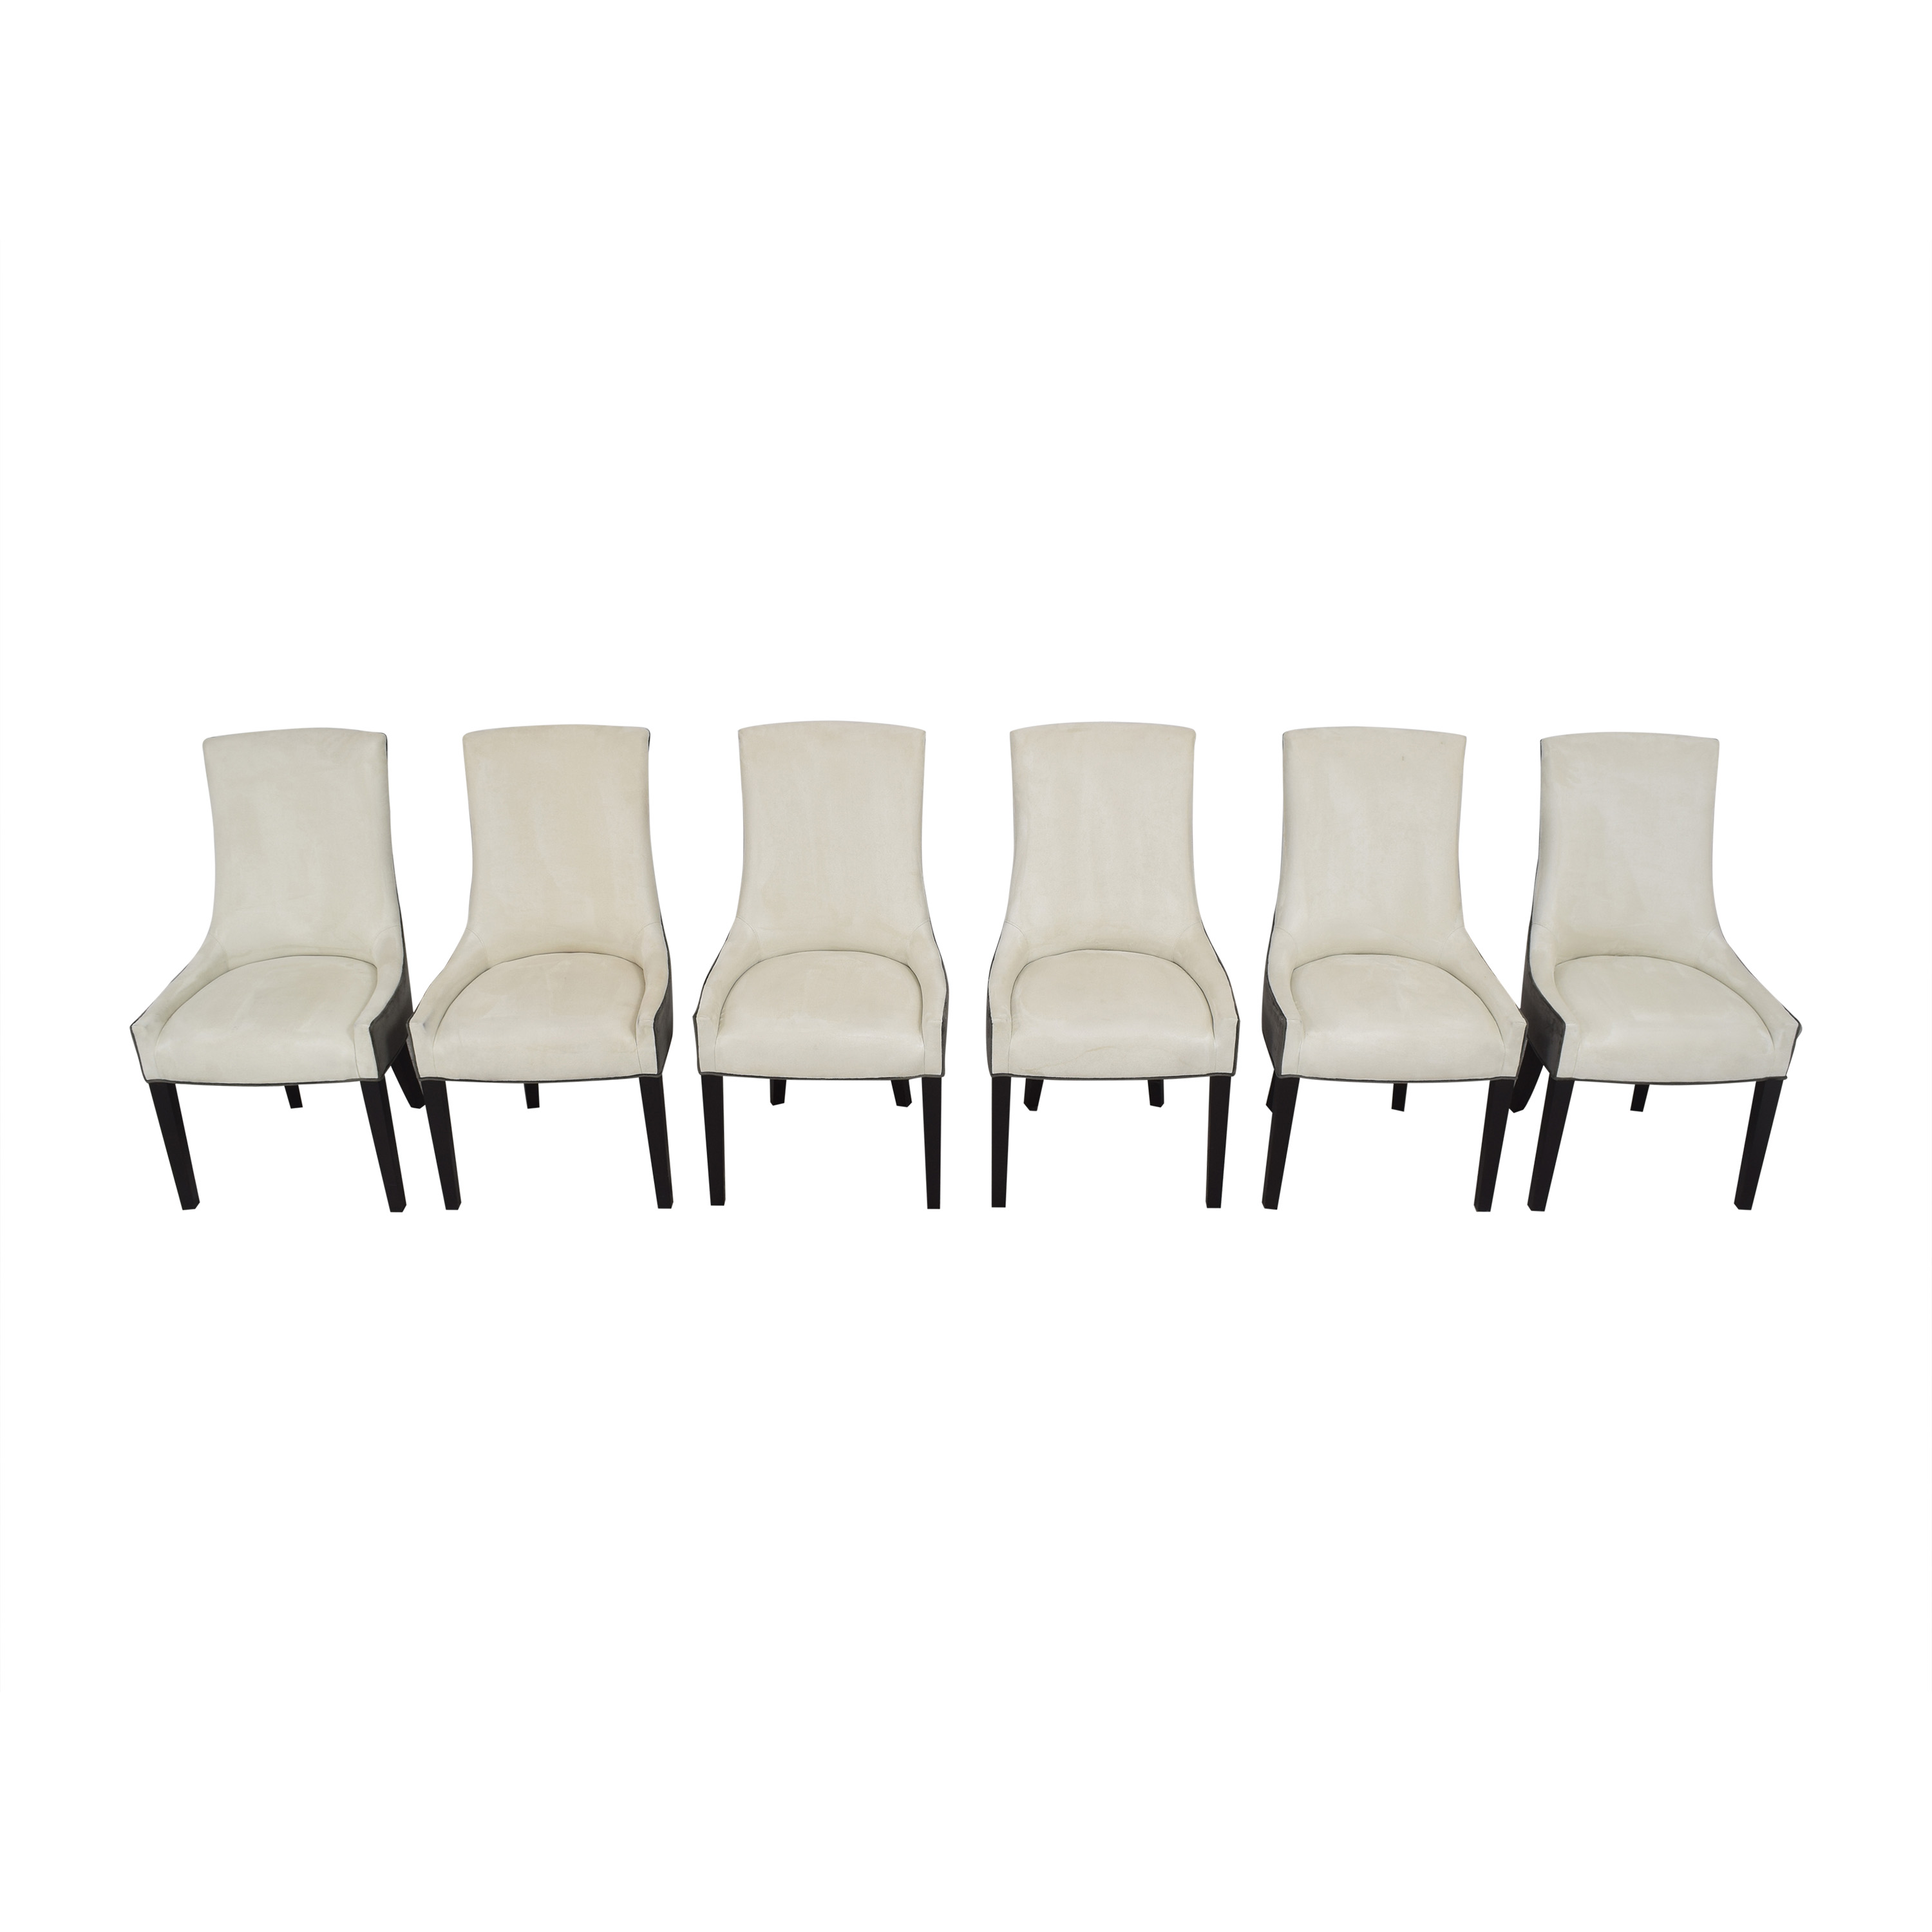 Mitchell Gold + Bob Williams Mitchell Gold + Bob Williams Ada Side Dining Chairs off white and dark gray